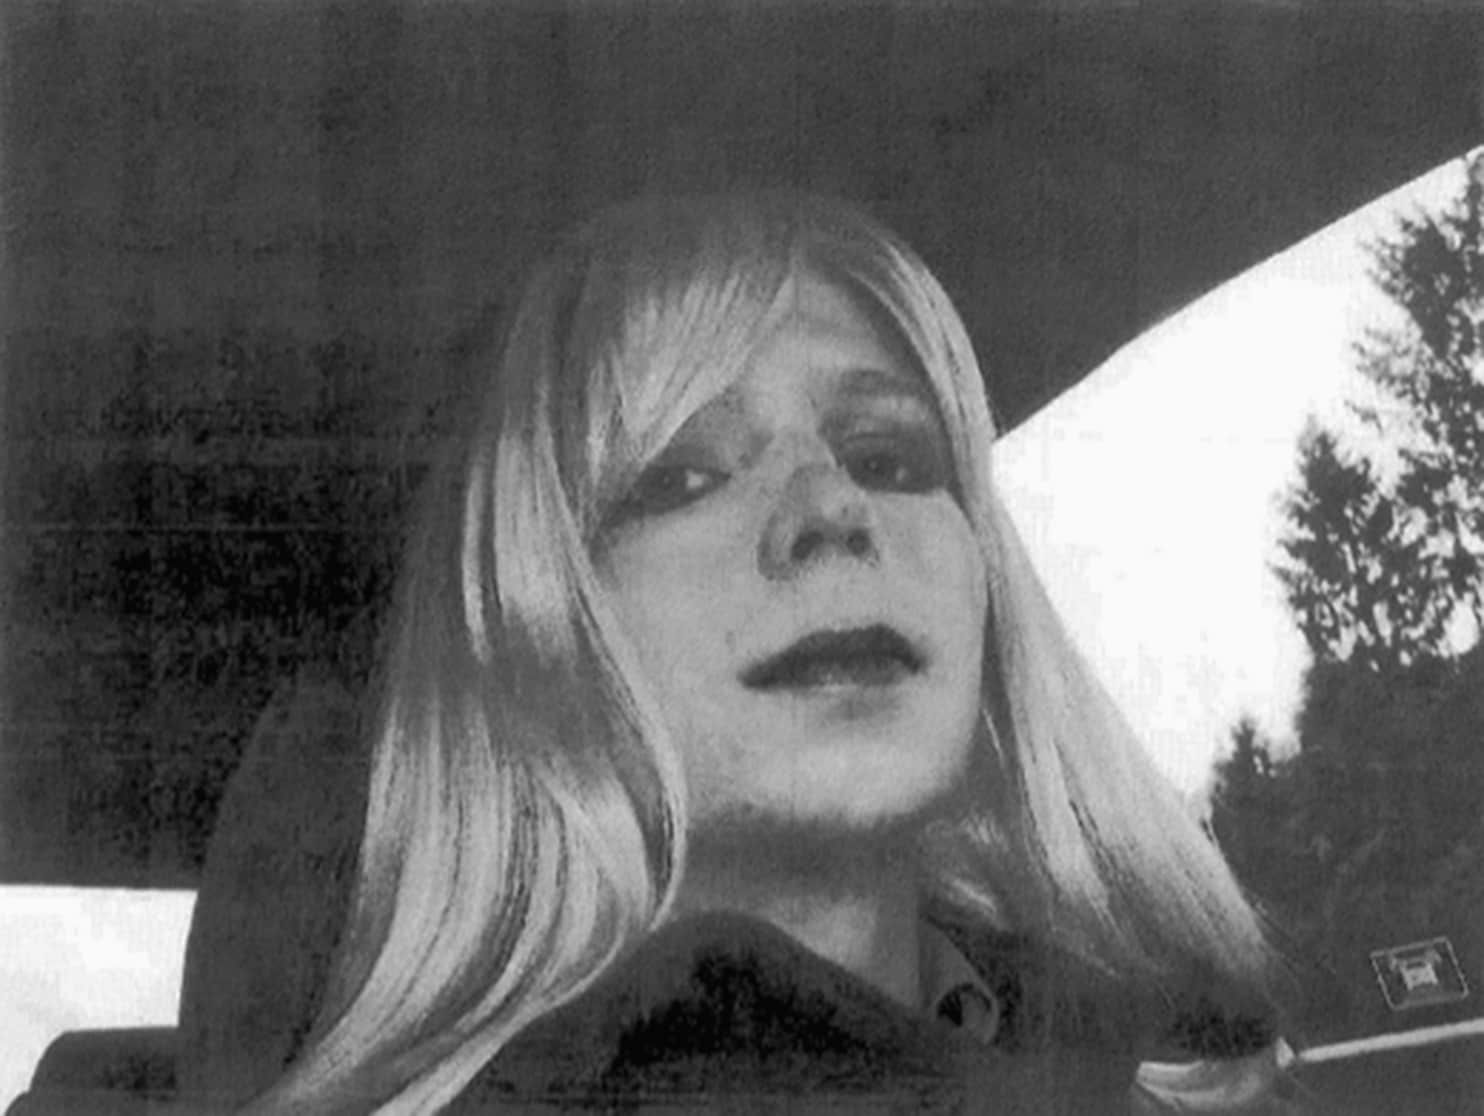 Chelsea Manning, who gave trove of US secrets to WikiLeaks, leaves prison - Washington Post